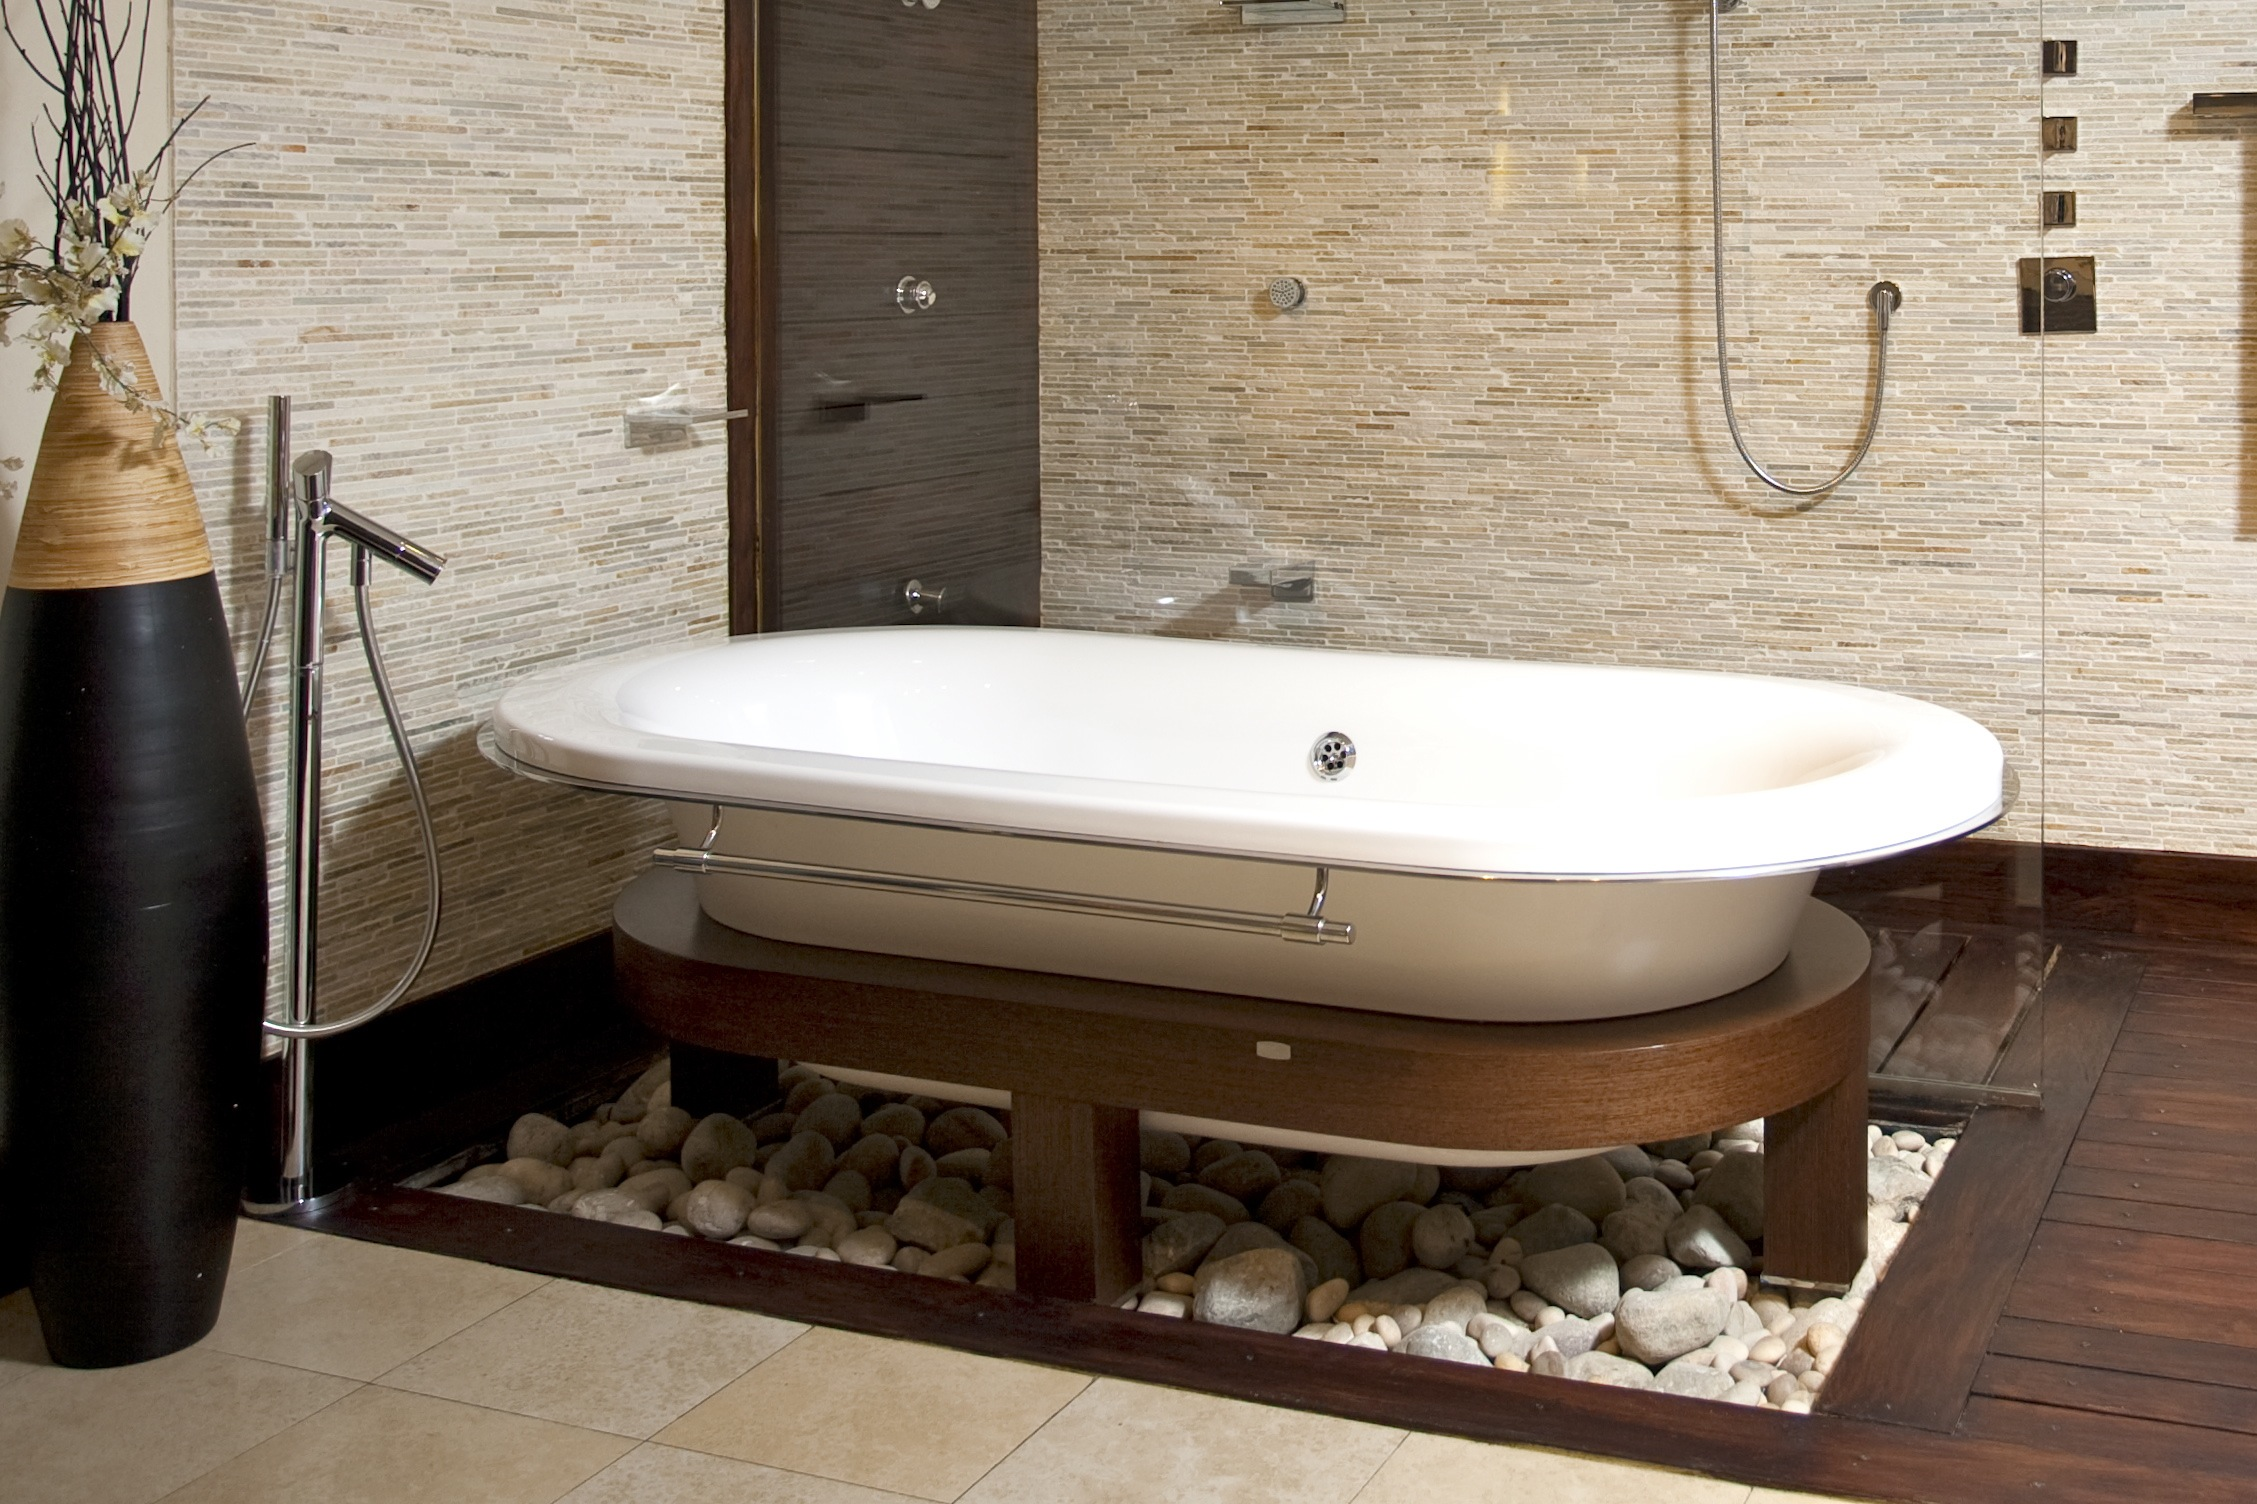 bathroom-stone-also-wooden-table-and-lovable-white-bathtub-and-glazing-design-ideas-unique-glazing-bathroom-fancy-toilet-bathroom-with-interesting-brown-bathroom-tiles-beauteous-unique-bathroom-tile